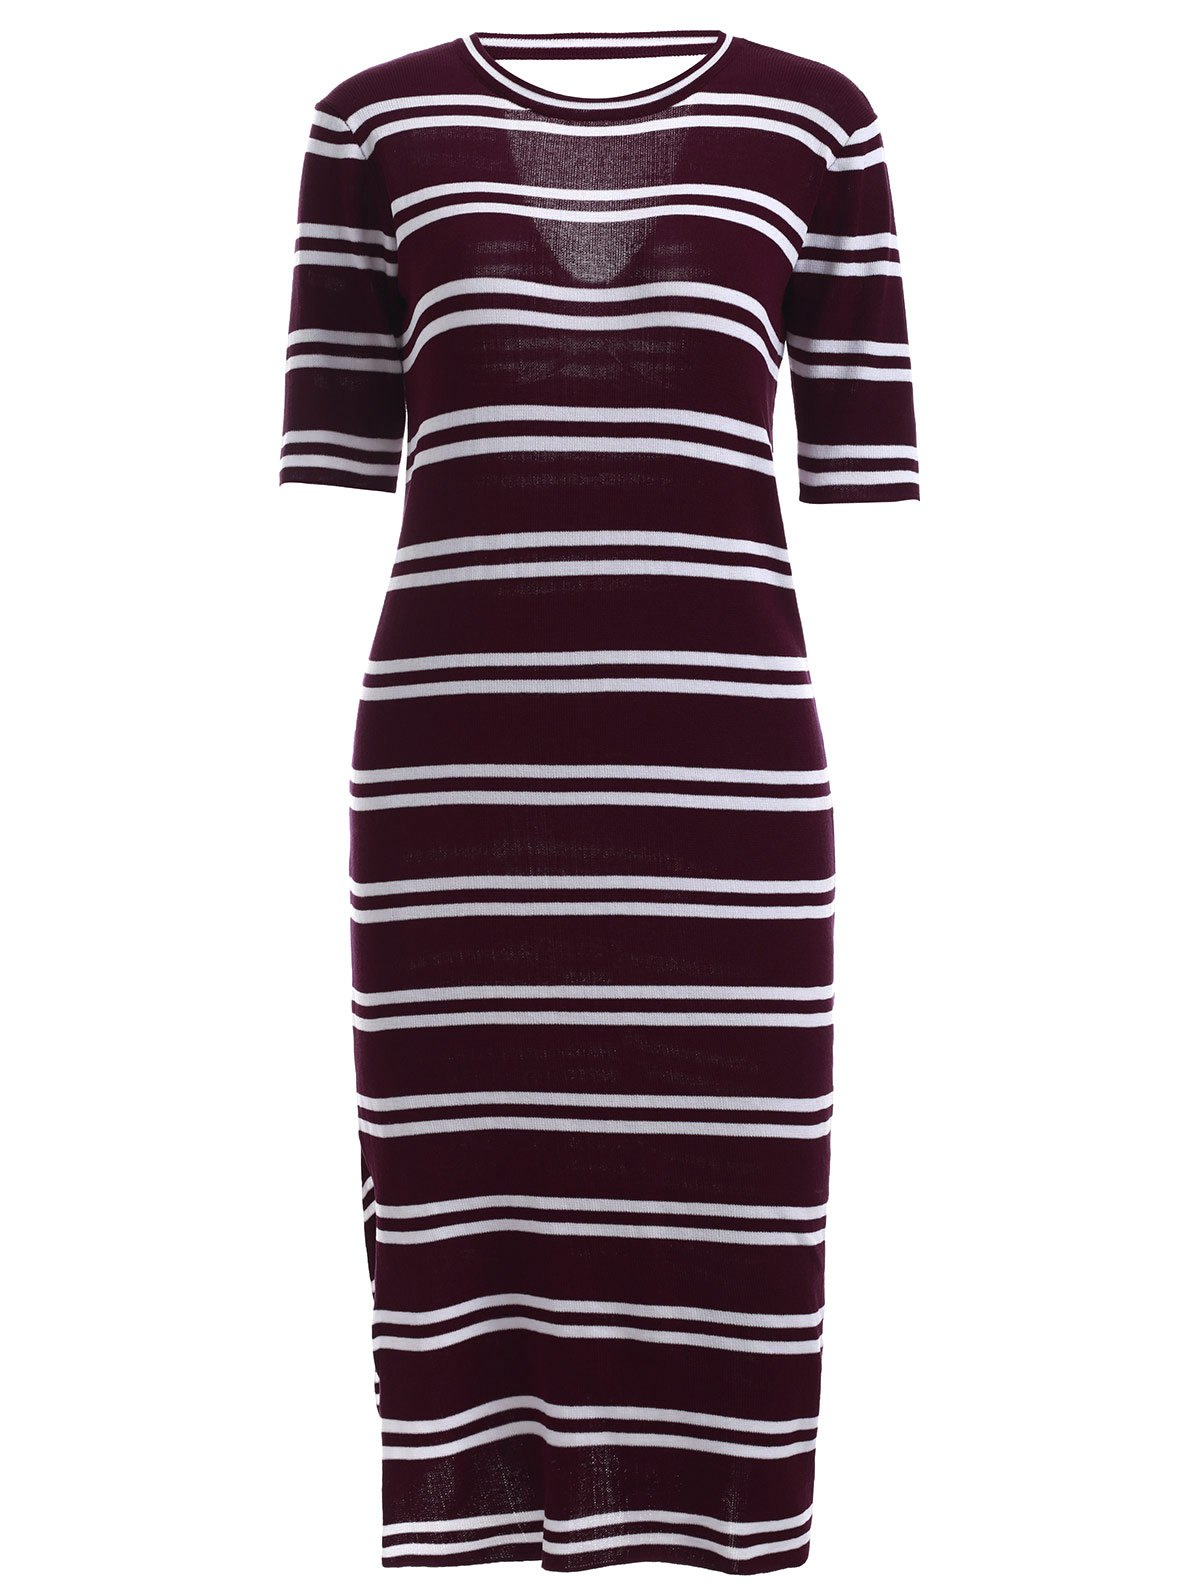 Stylish Round Neck Striped Cut Out Women's Dress